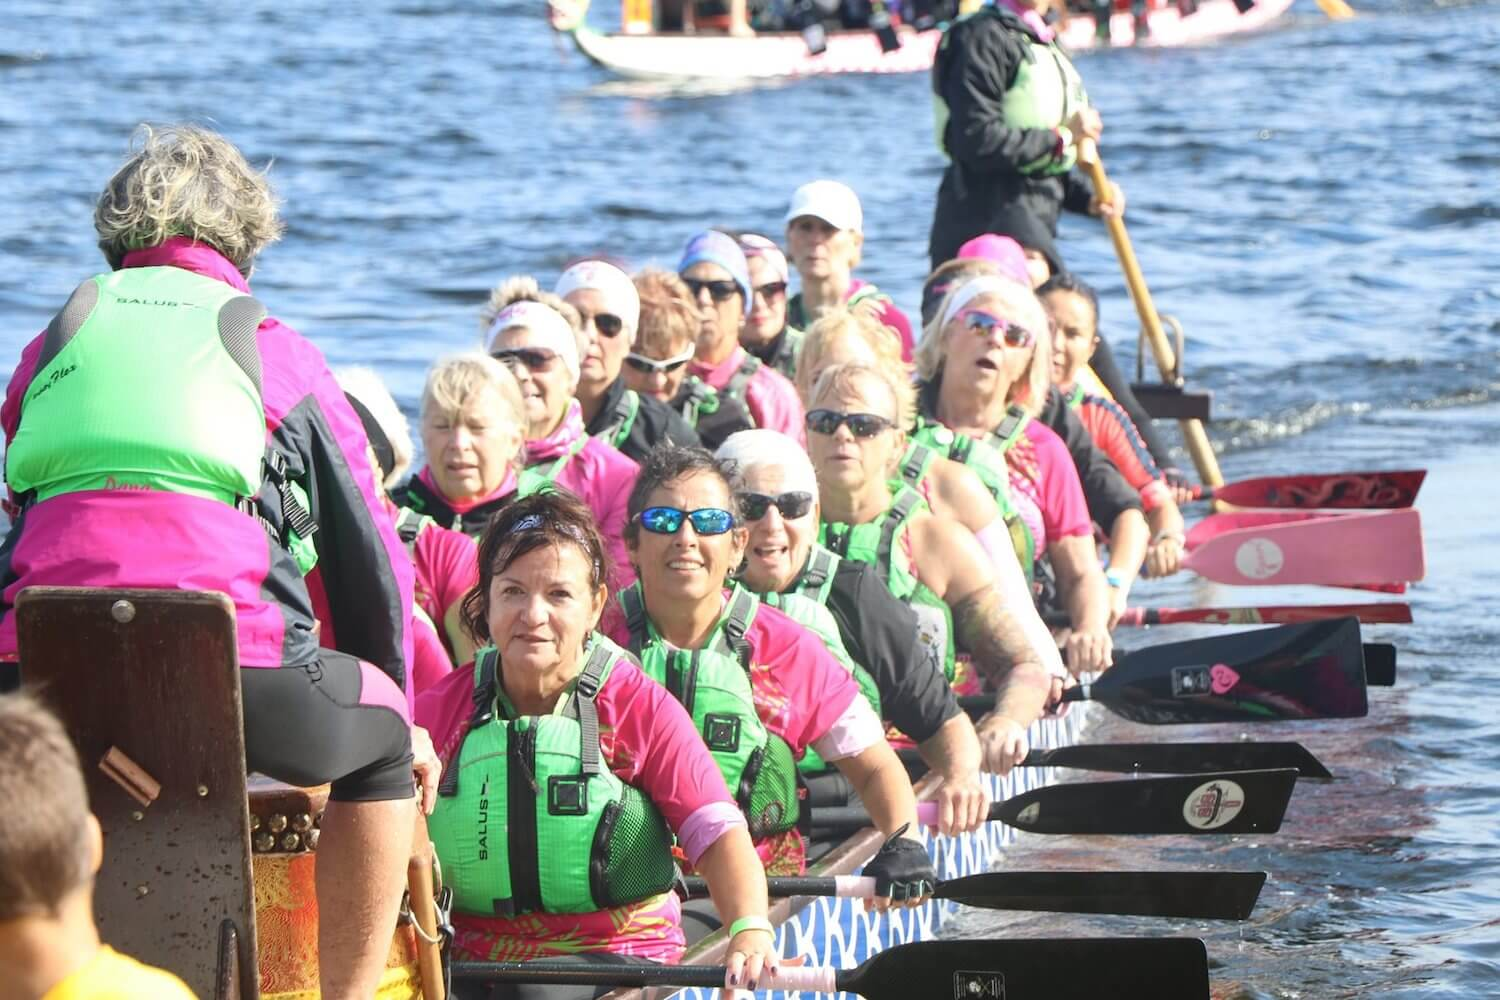 Photo of a women's Dragonboat team in their boat